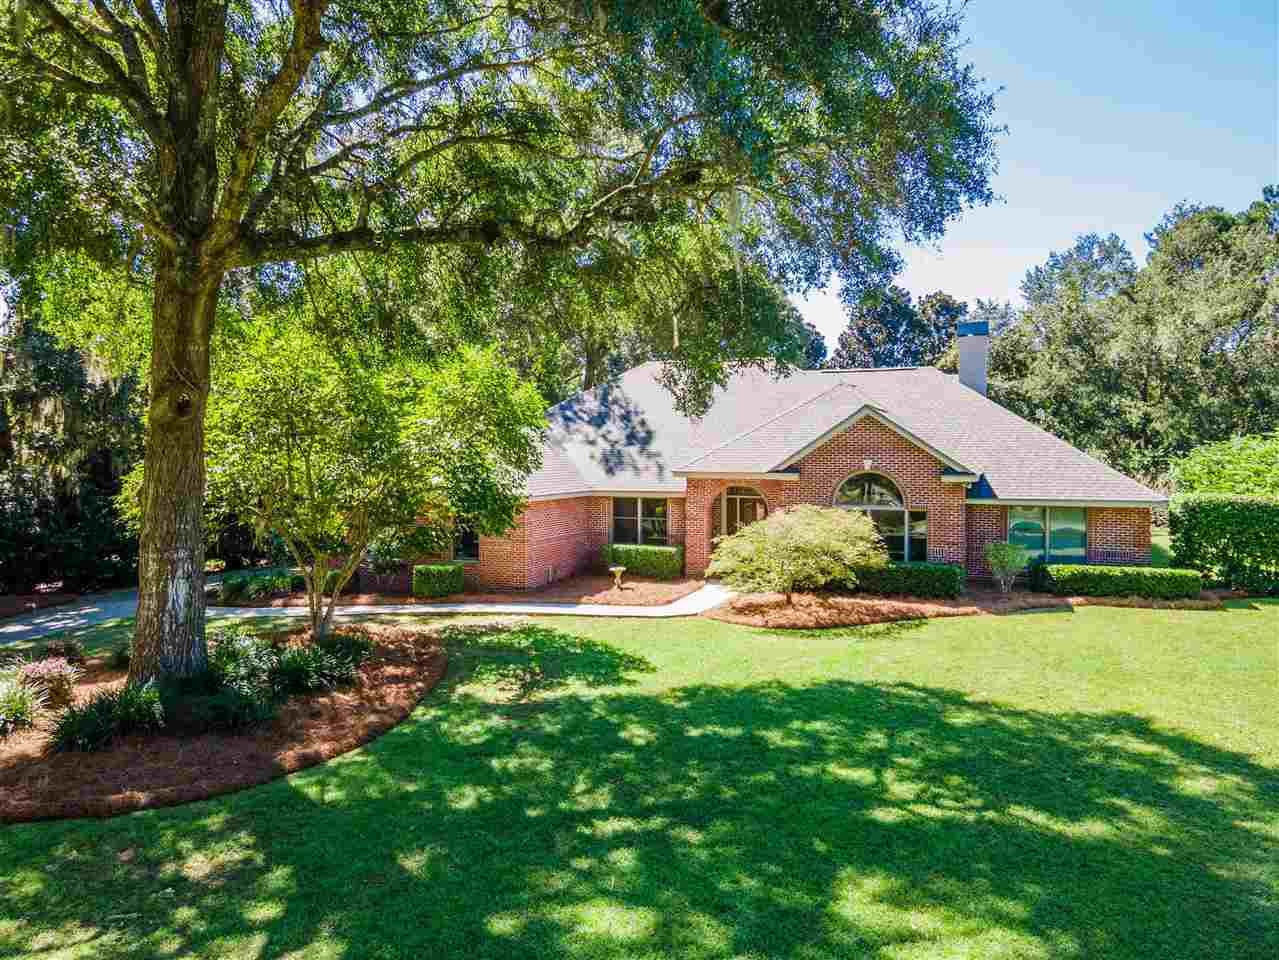 Photo of 3662 Uncle Glover Road, TALLAHASSEE, FL 32312 (MLS # 324259)